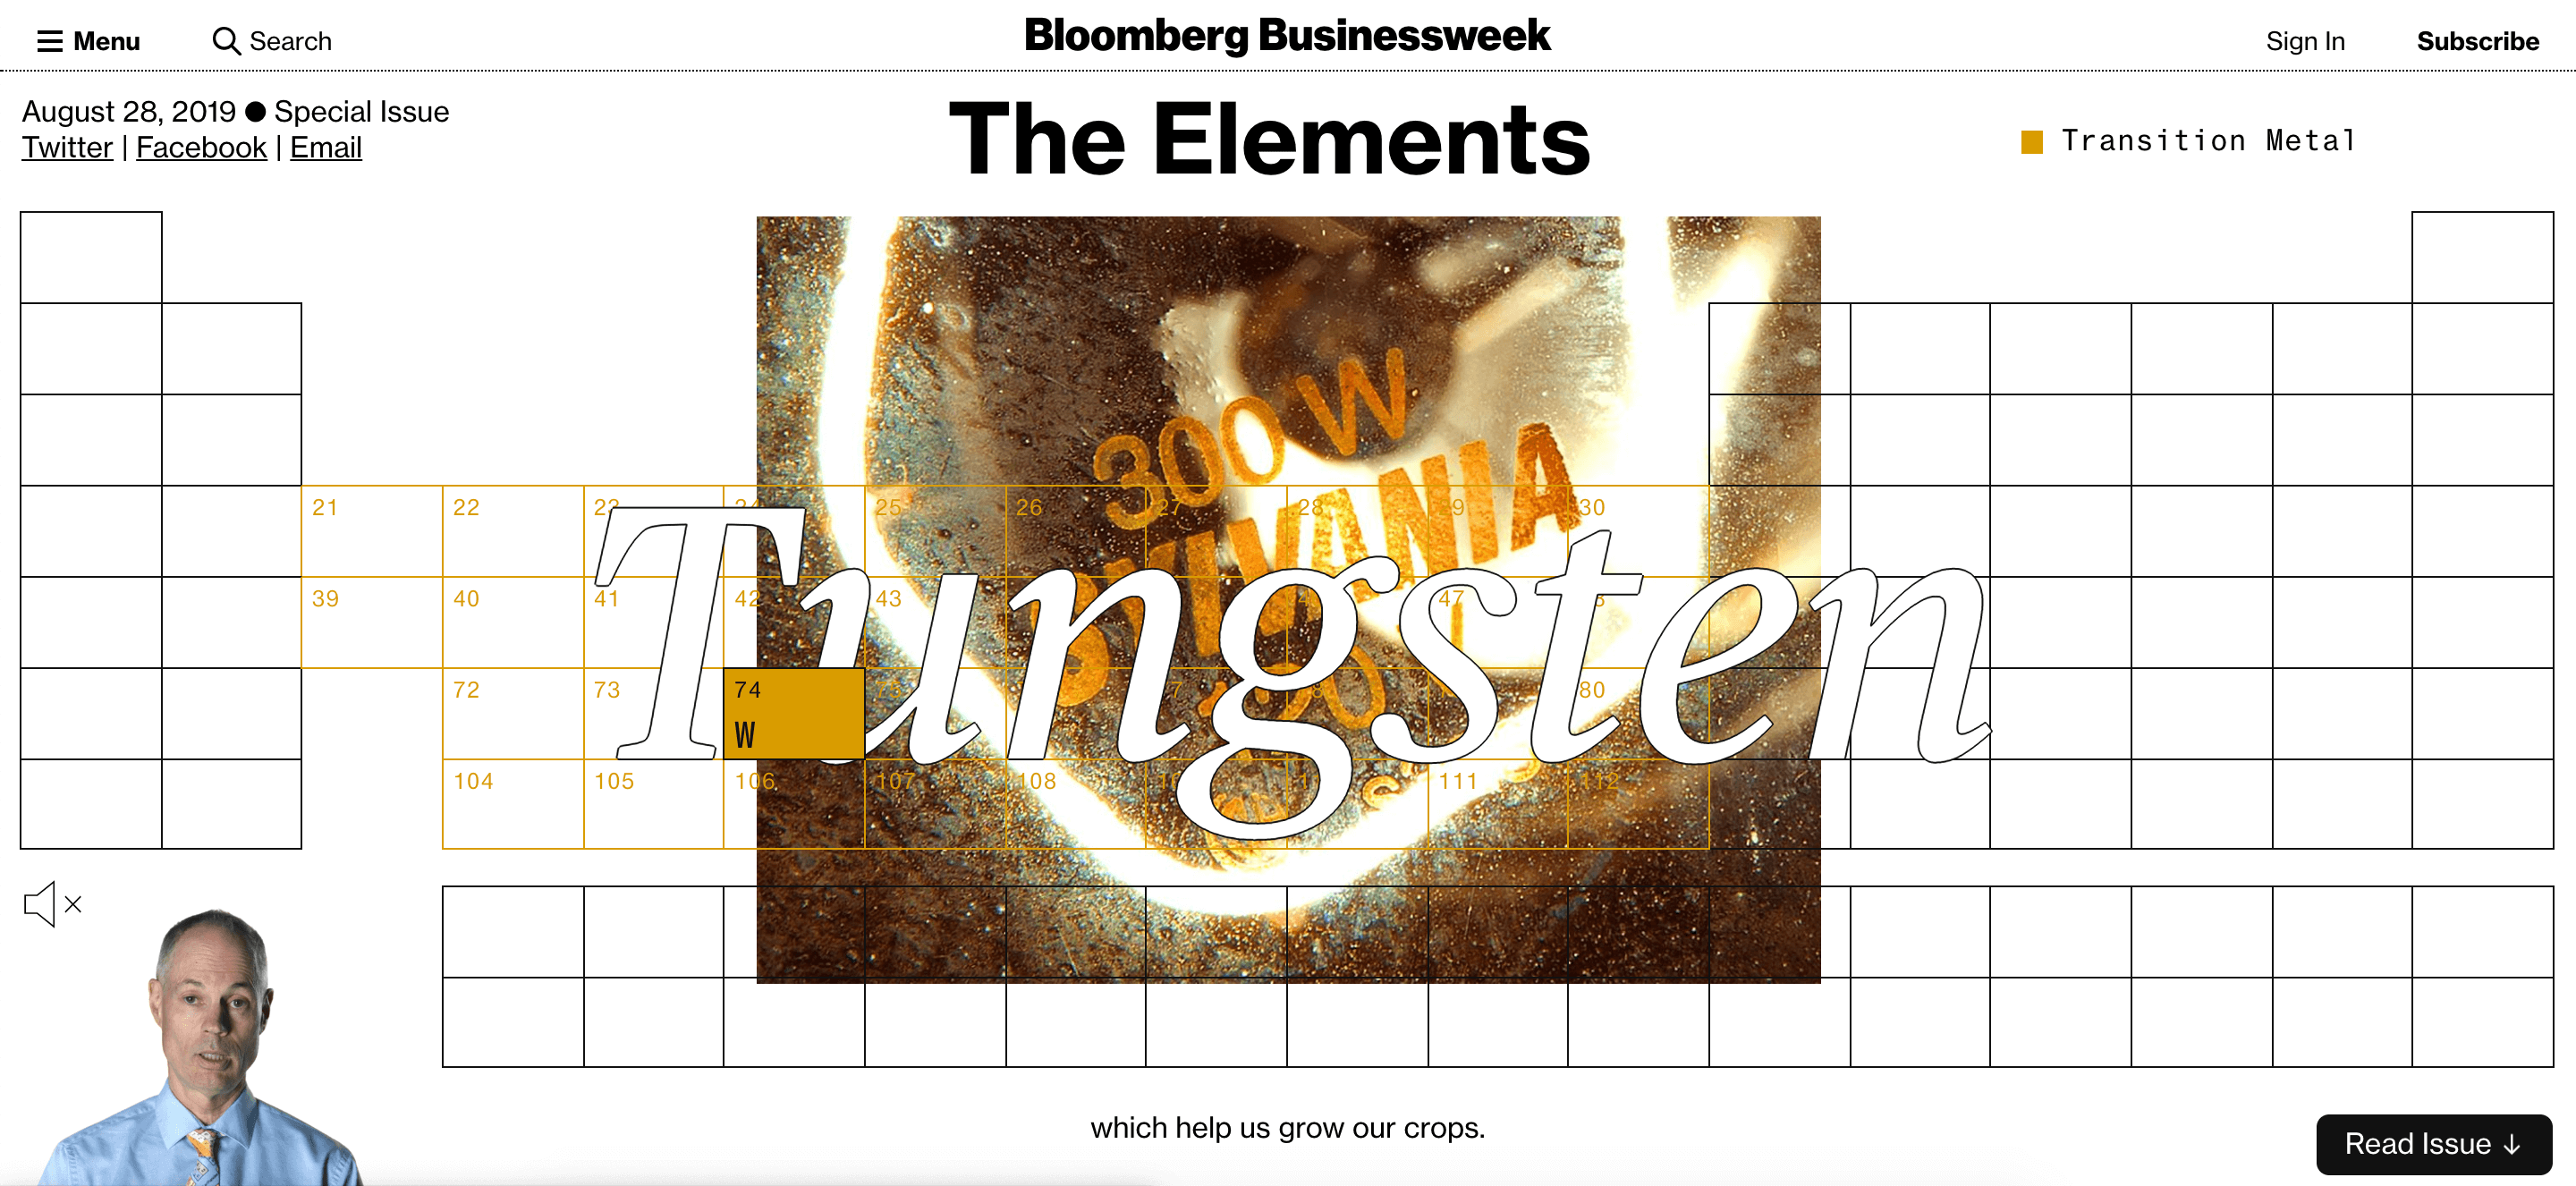 periodic-table-elements-issue-bloomberg